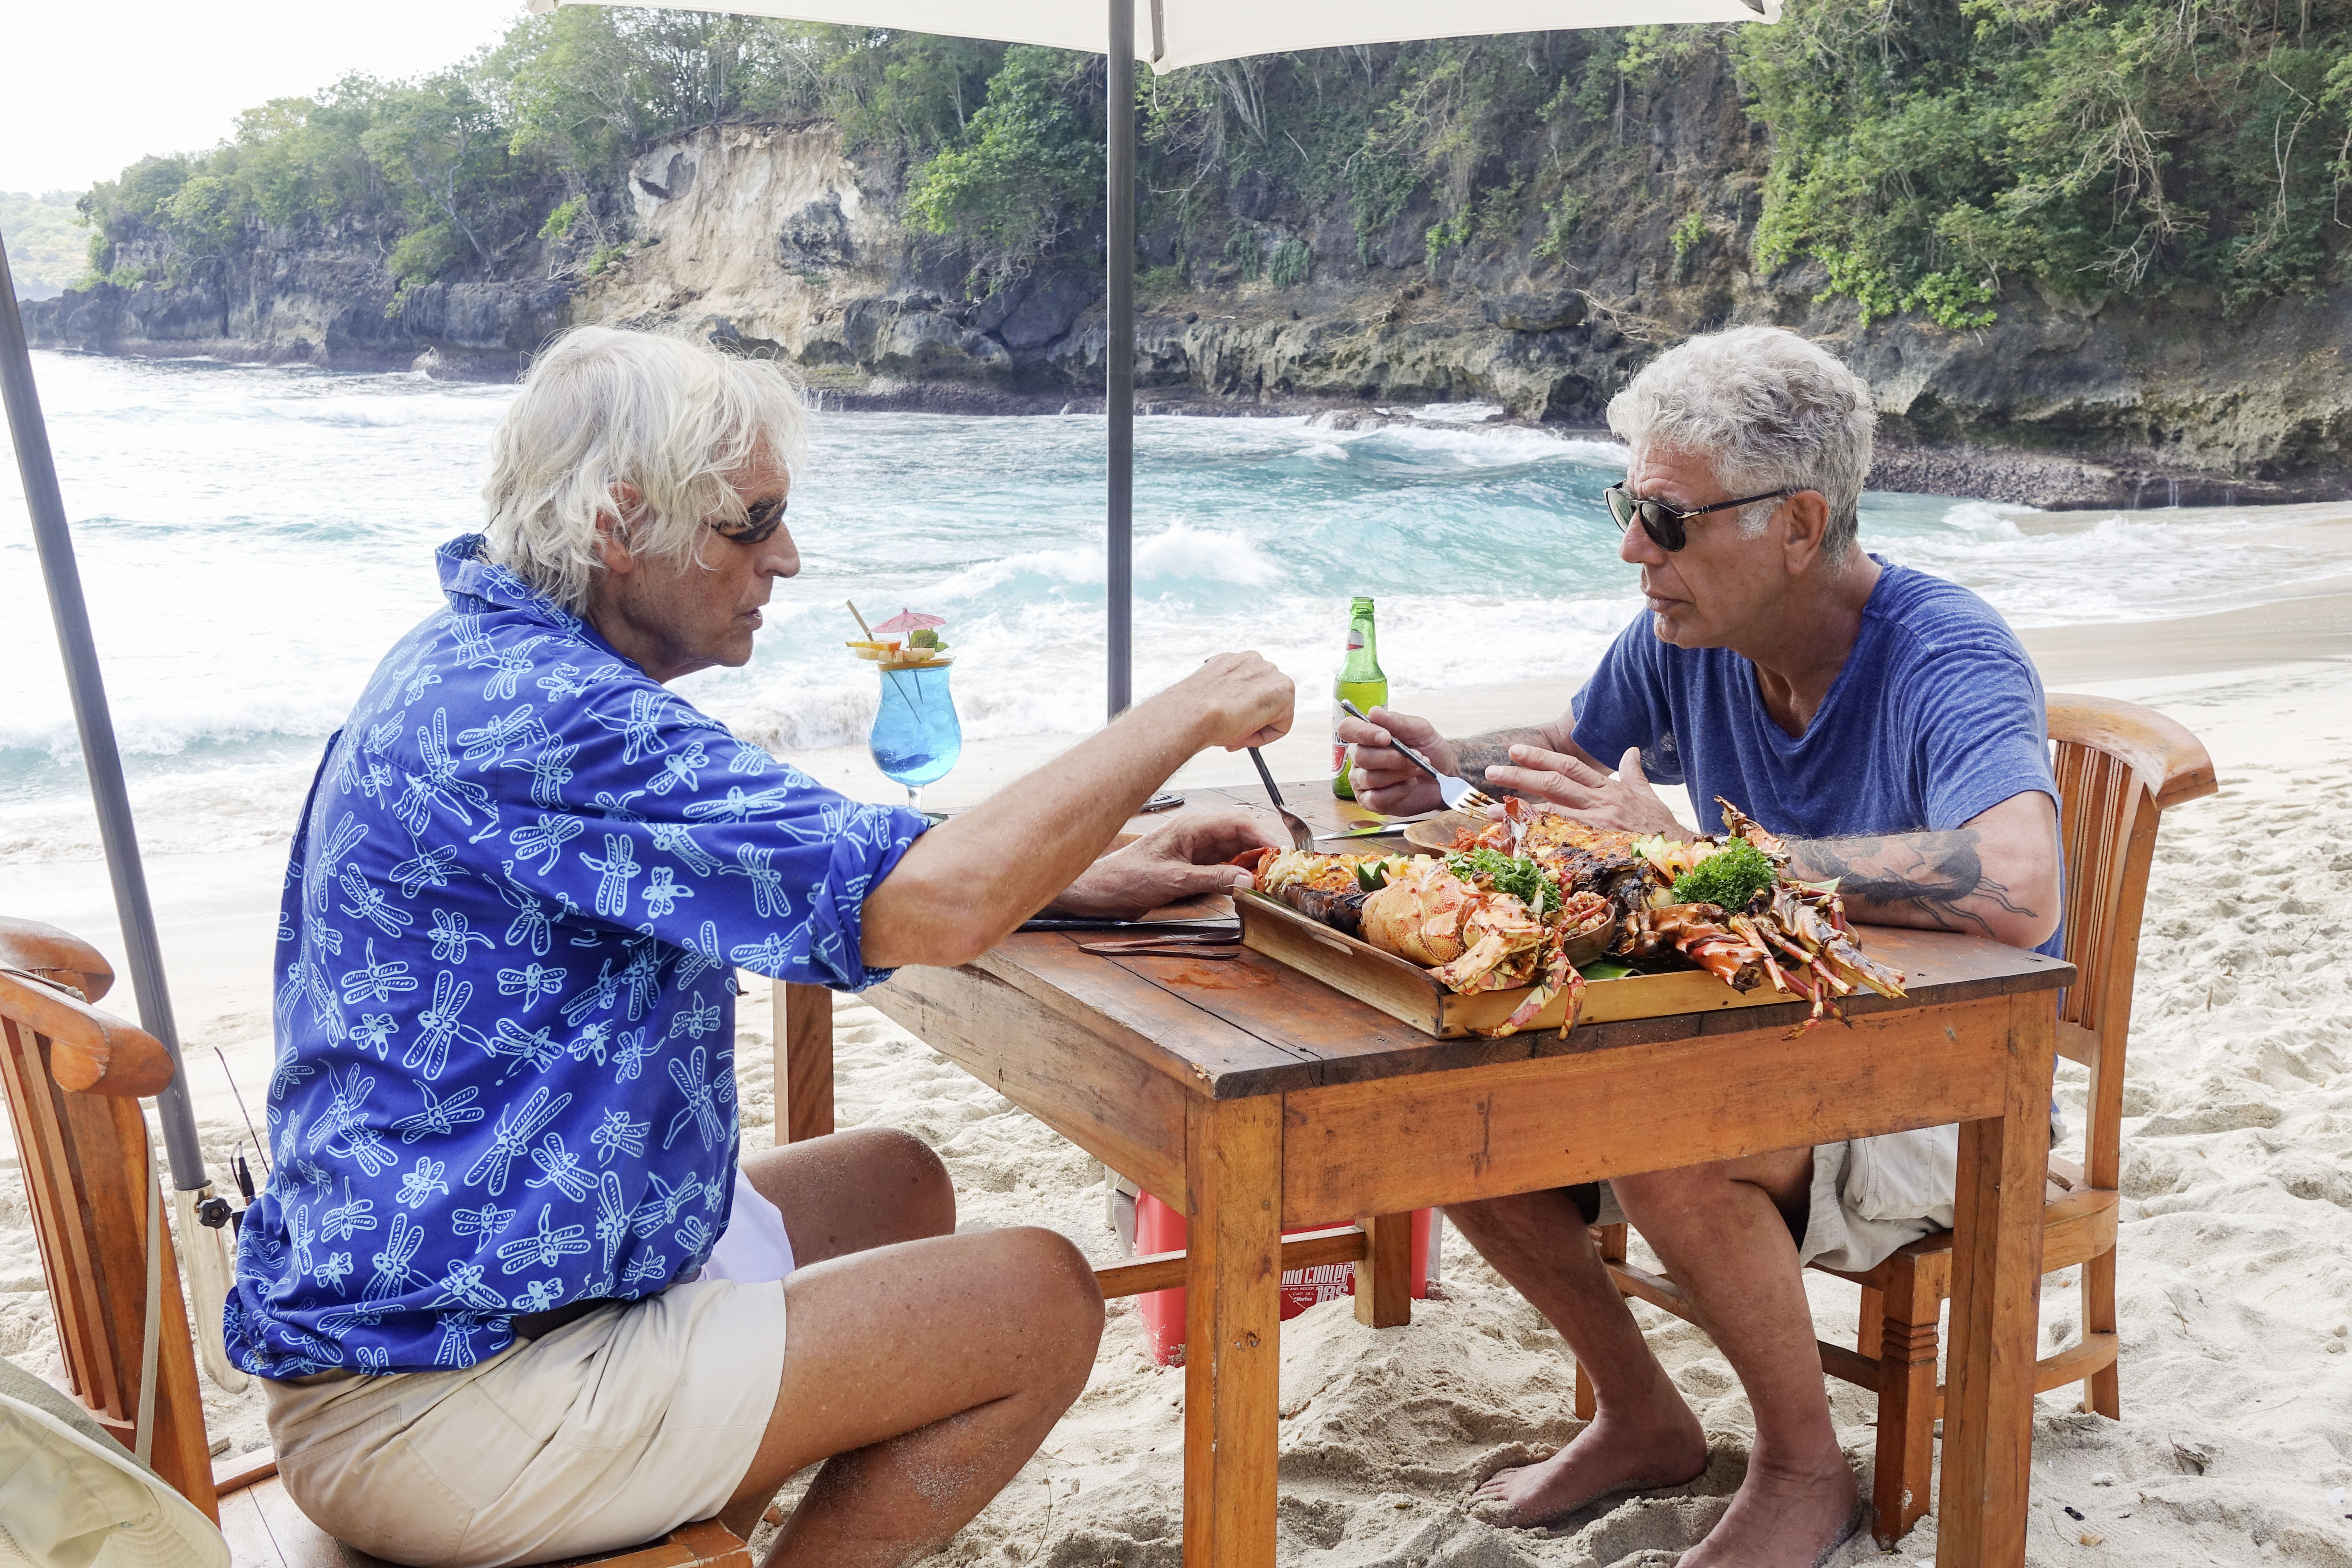 A discussion about Balinese funerals commences over an epic meal on the beach between Anthony Bourdain and an Indonesian local